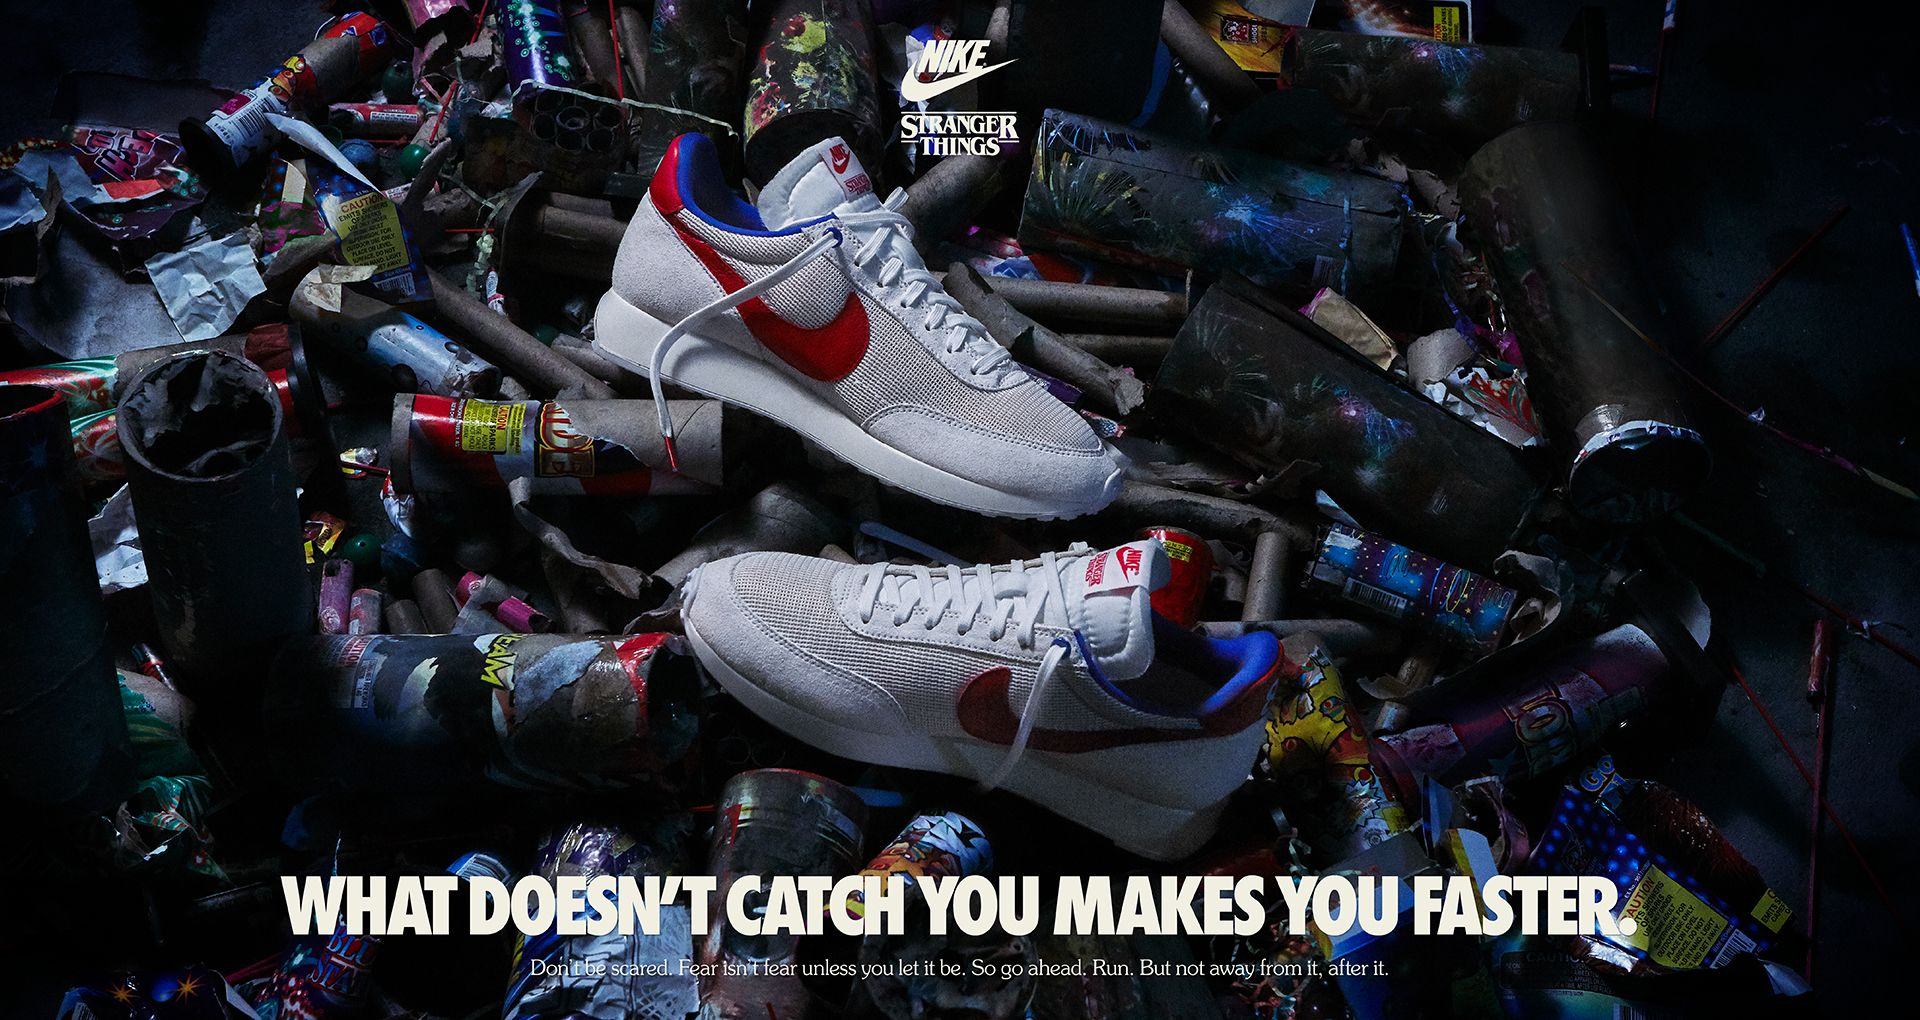 Nike x Stranger Things Air Tailwind 79 'OG Collection